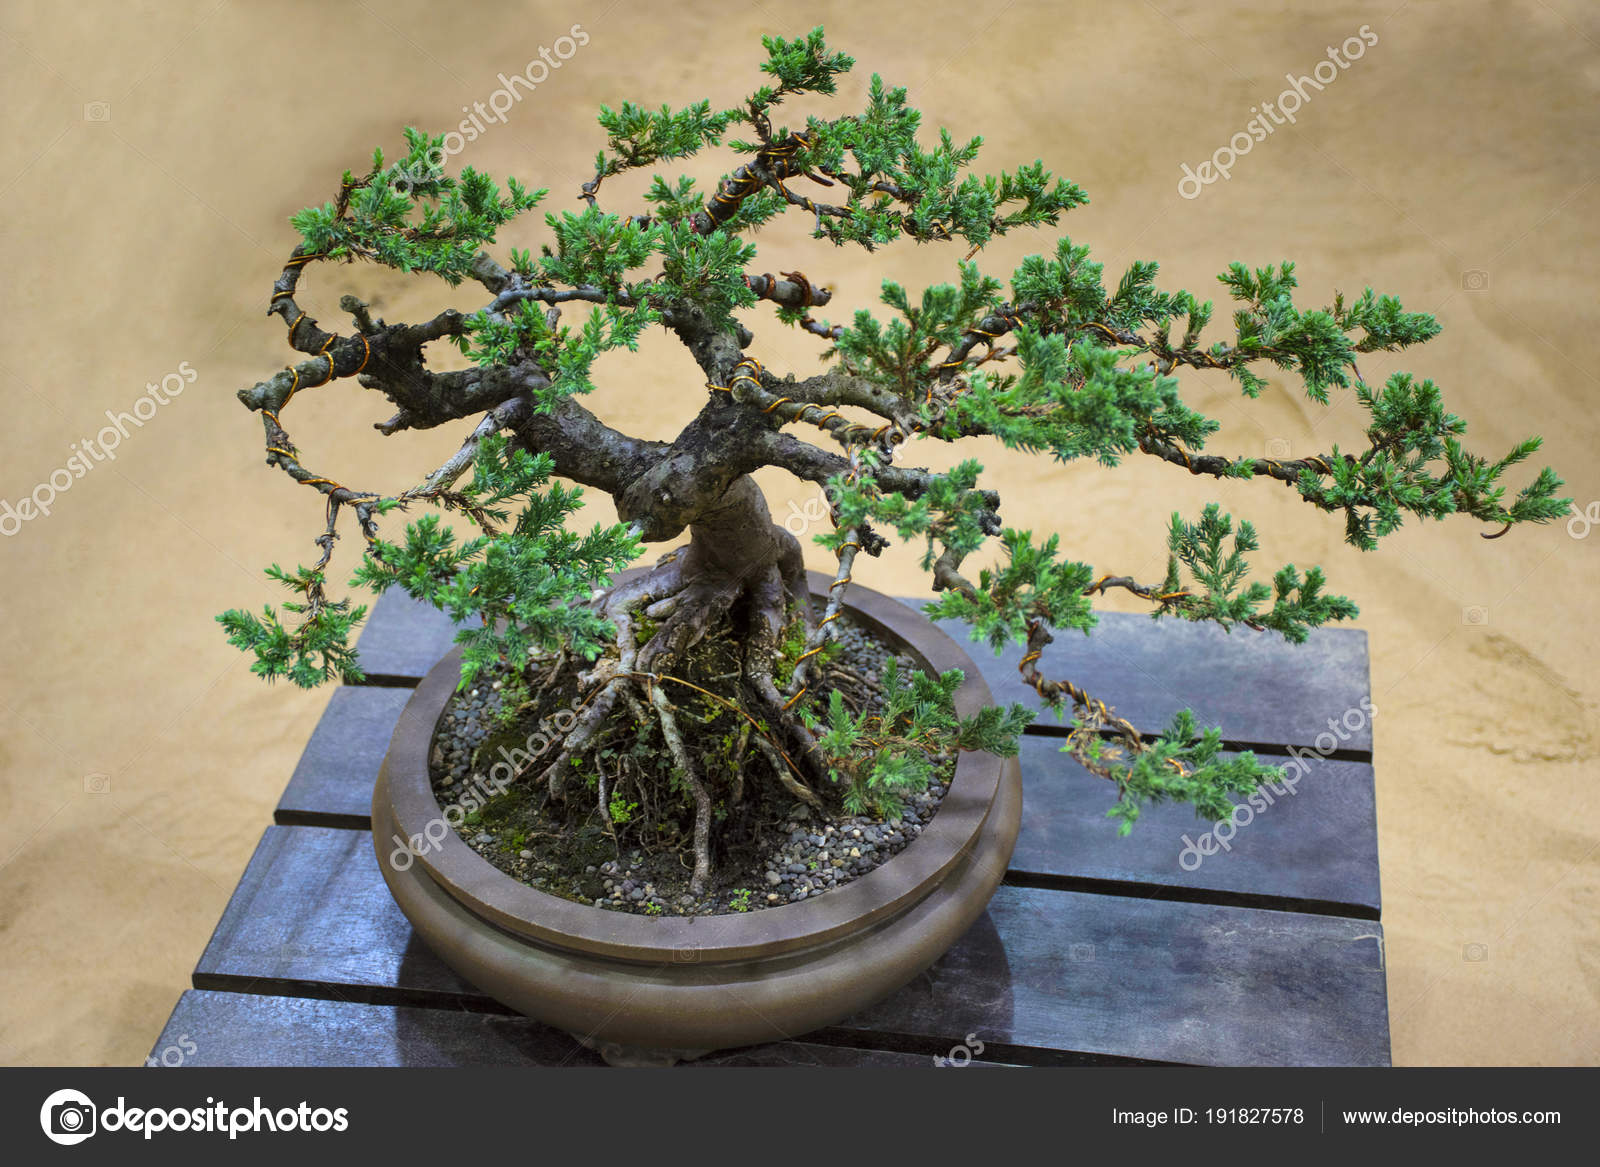 Juniper Procumbens Nana Tree Bonsai Exhibition Pune Shivajinagar Pune Maharashtra Stock Photo C Realityimages 191827578